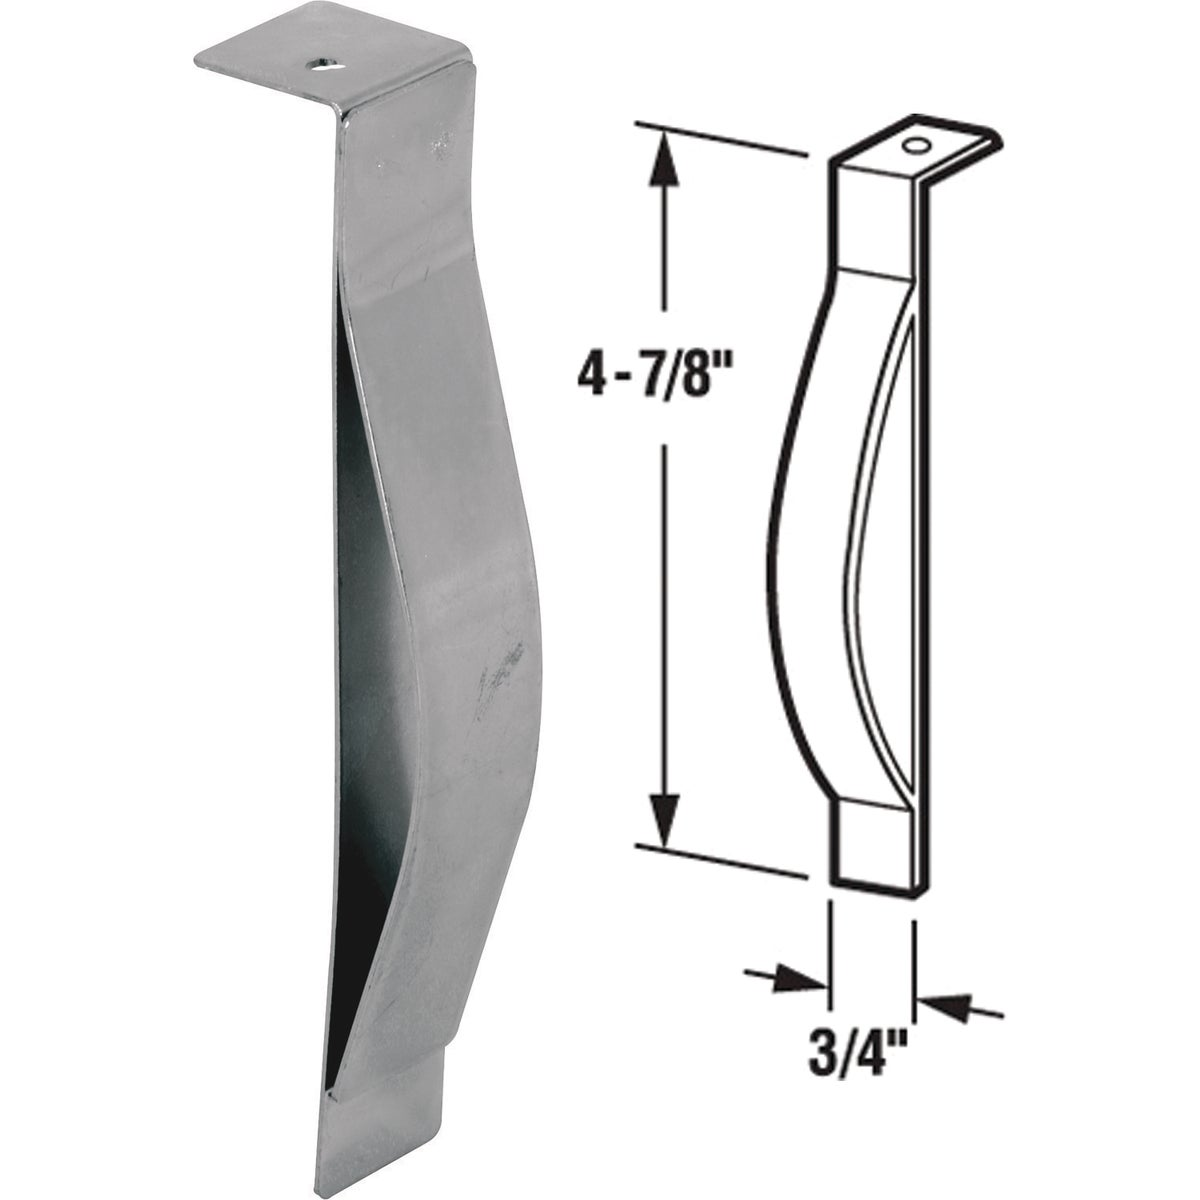 WOOD WINDOW SASH SPRING - 171119 by Prime Line Products